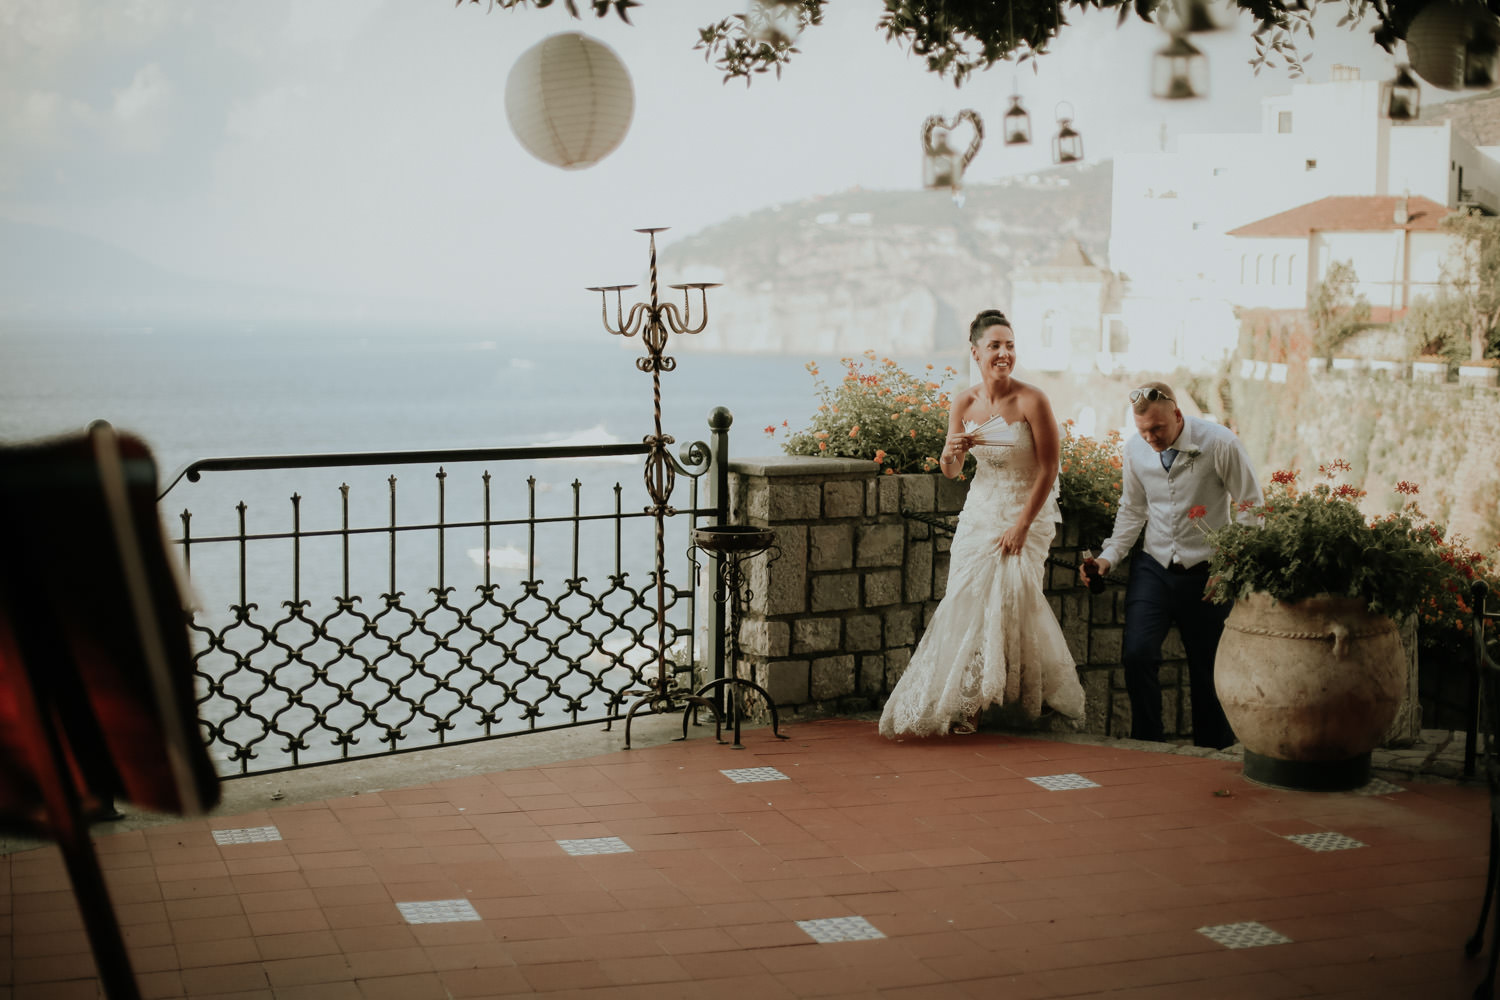 Wedding party at Villa Antiche Mura in Sorrento